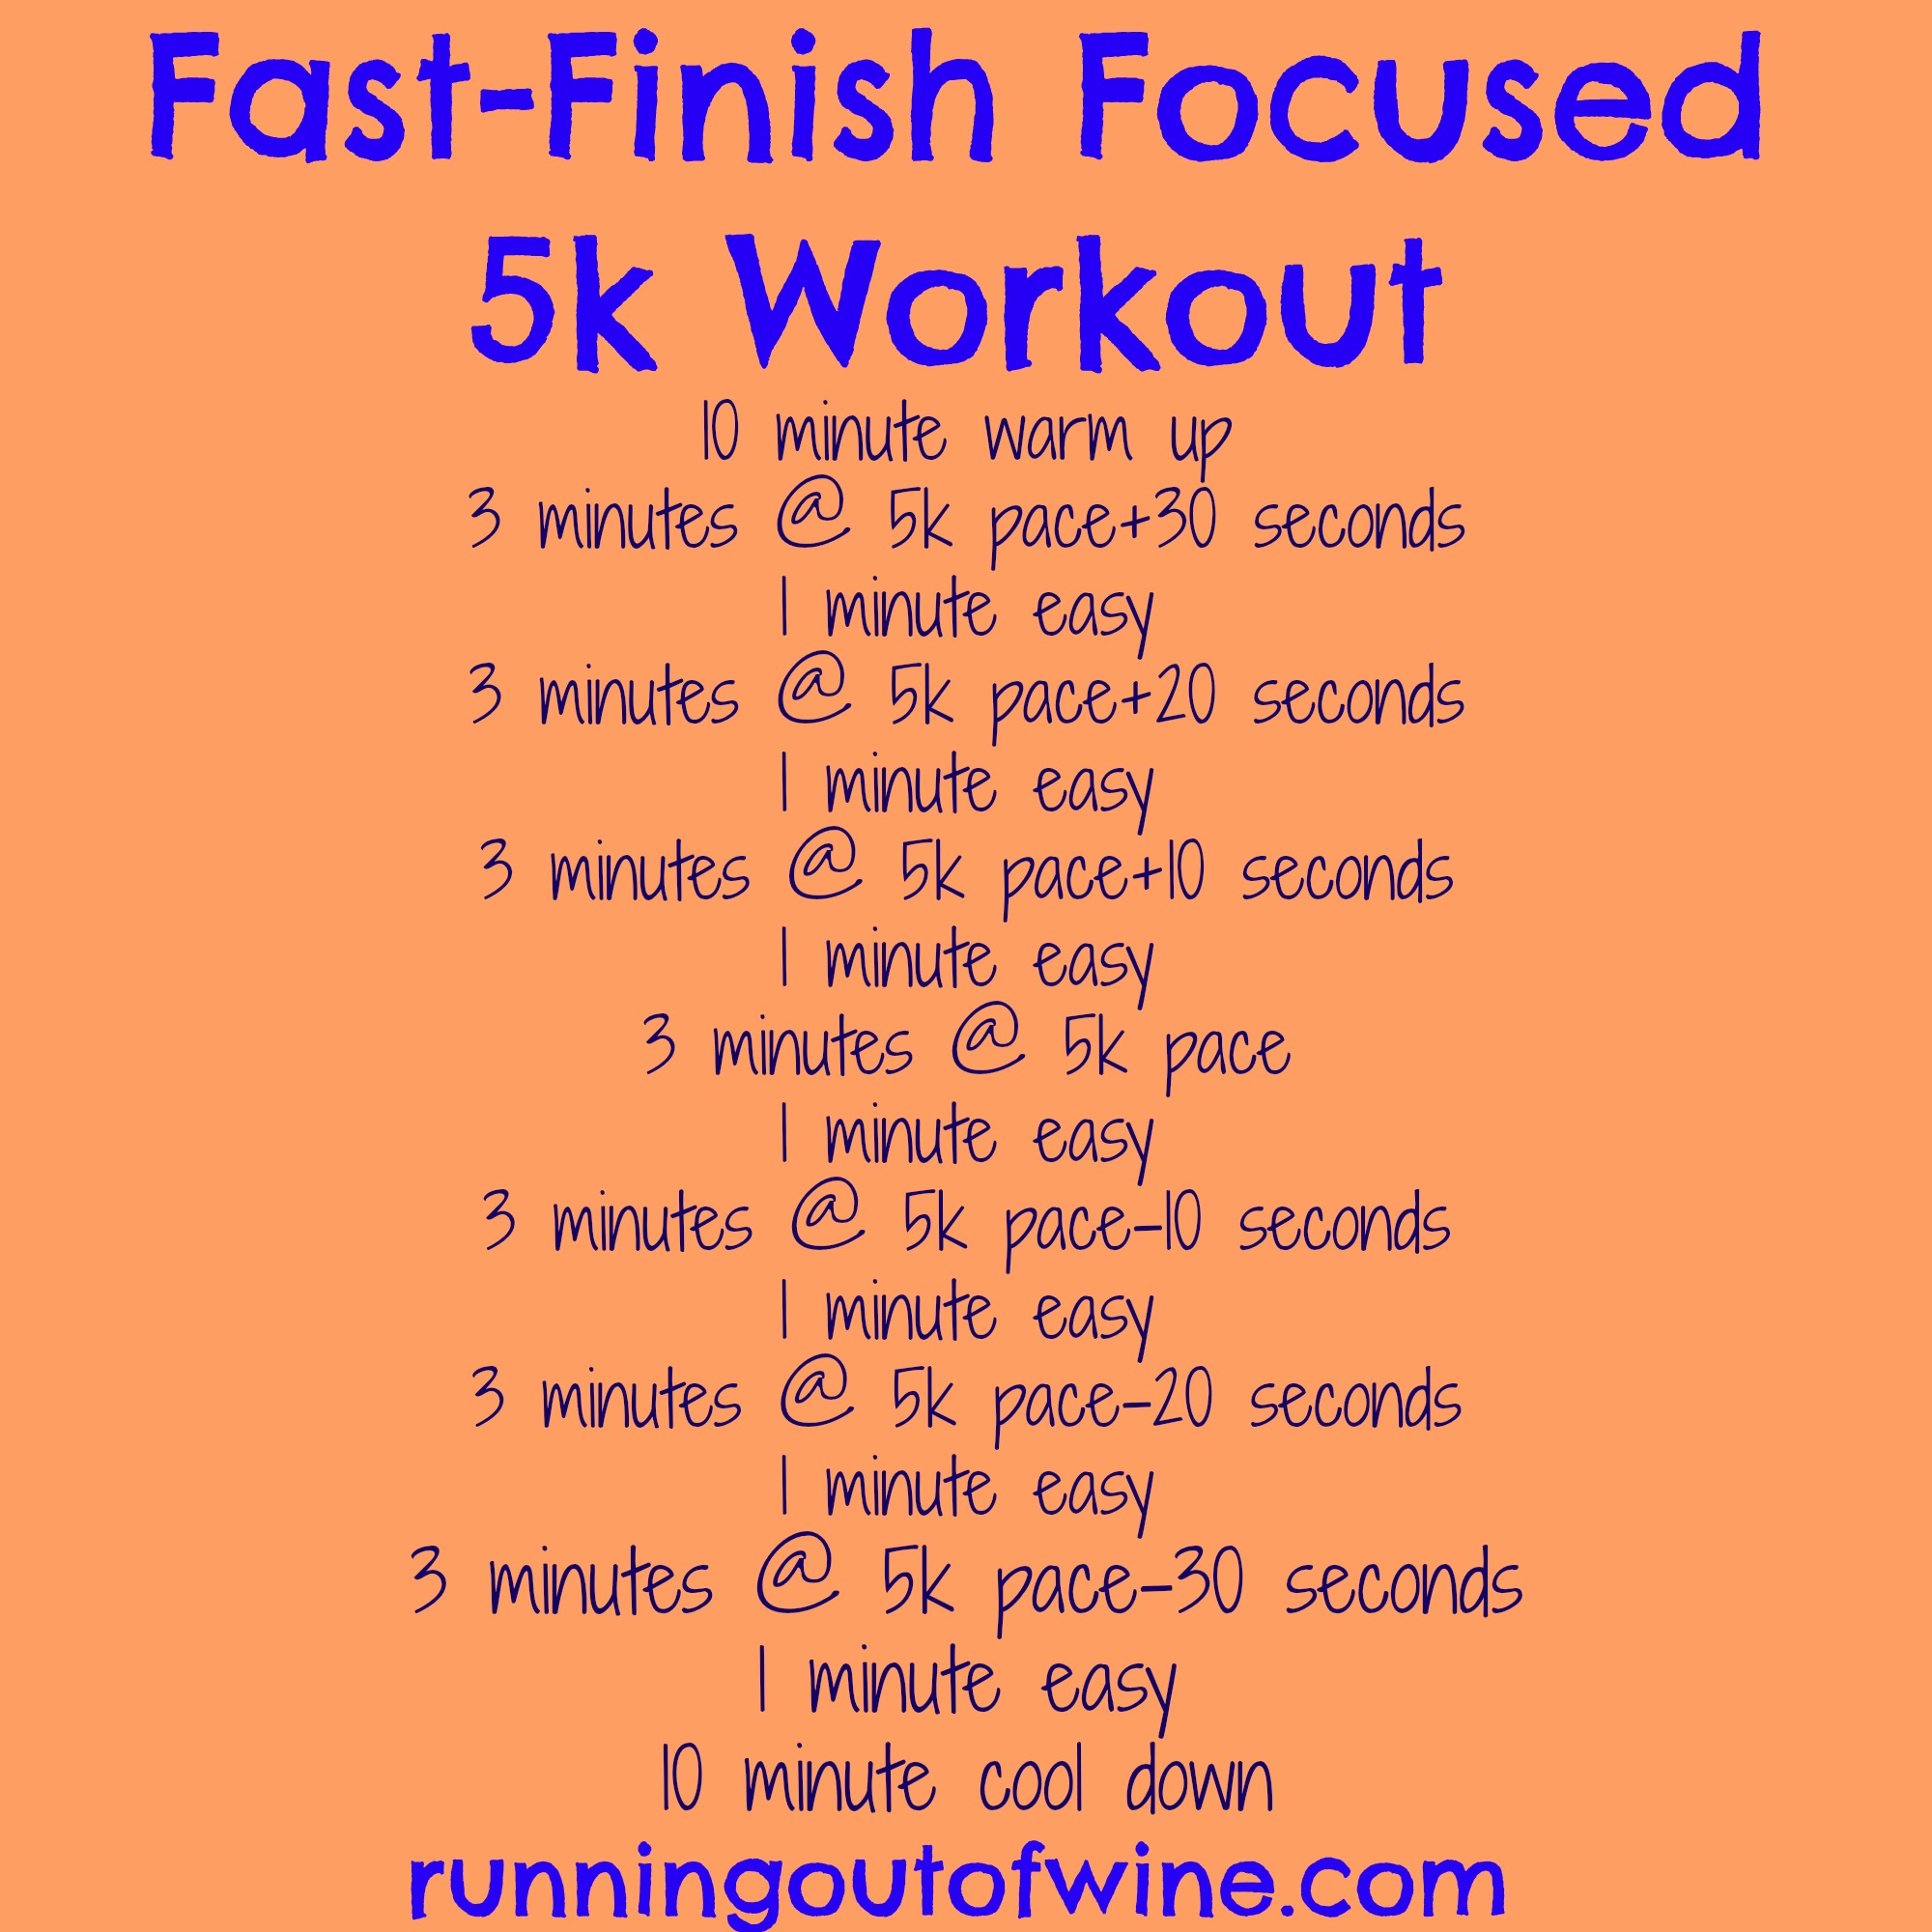 fast-finish focused 5k workout